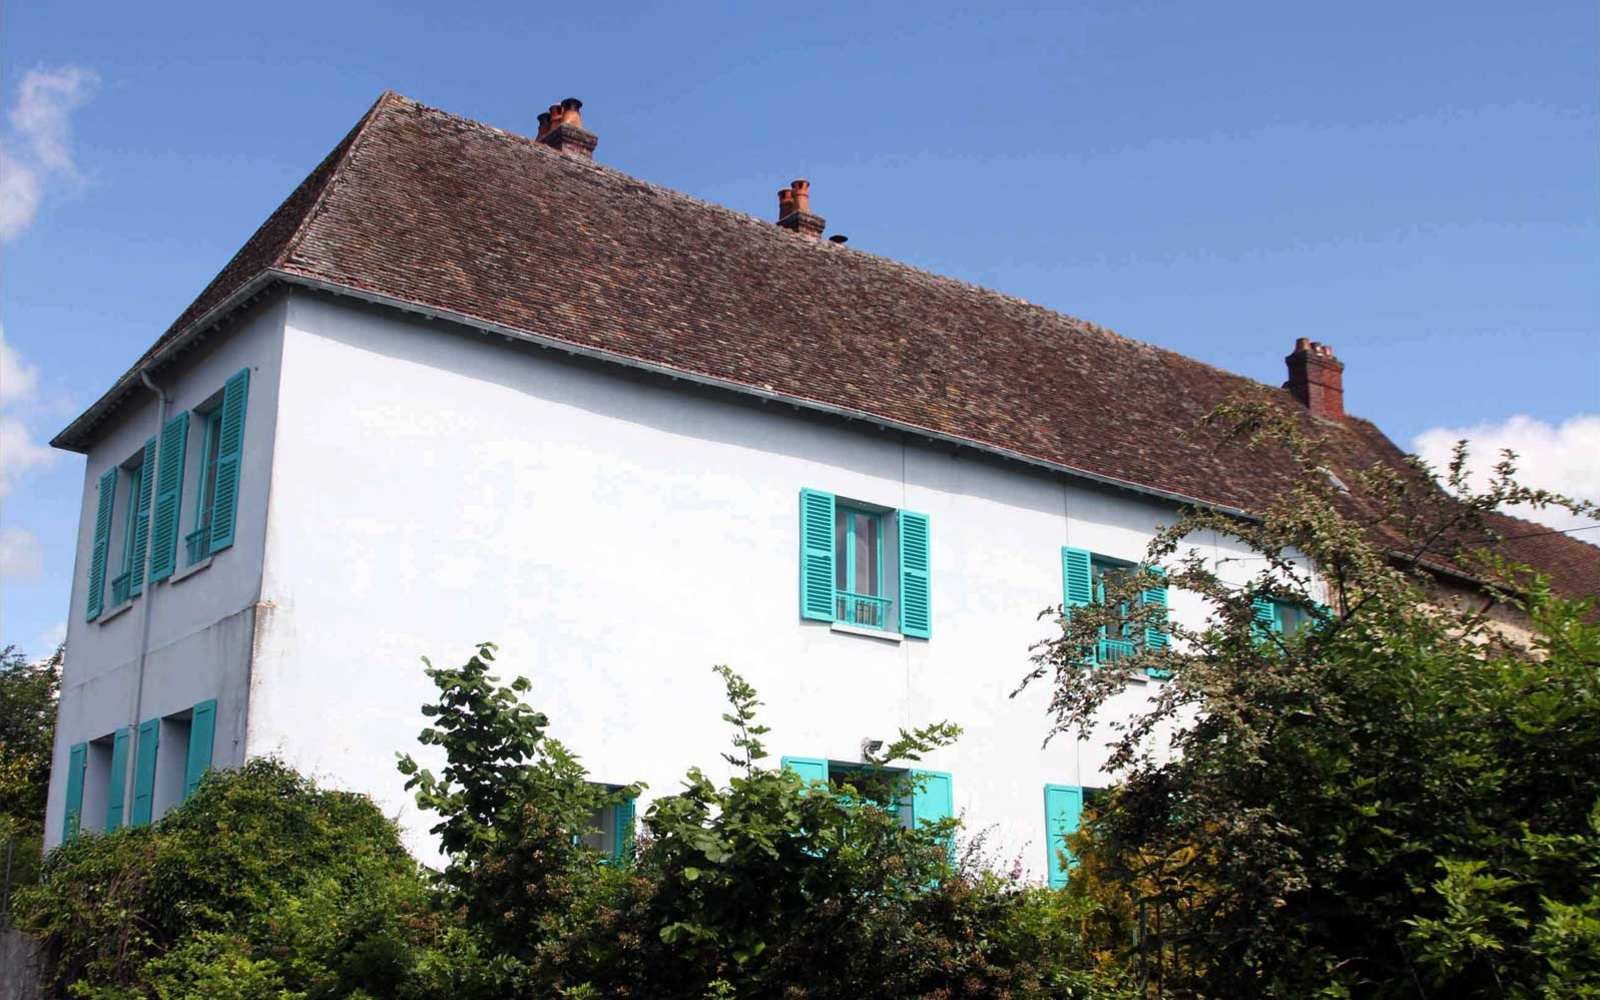 Airbnb Rental, Monet's Blue House, Giverny, France